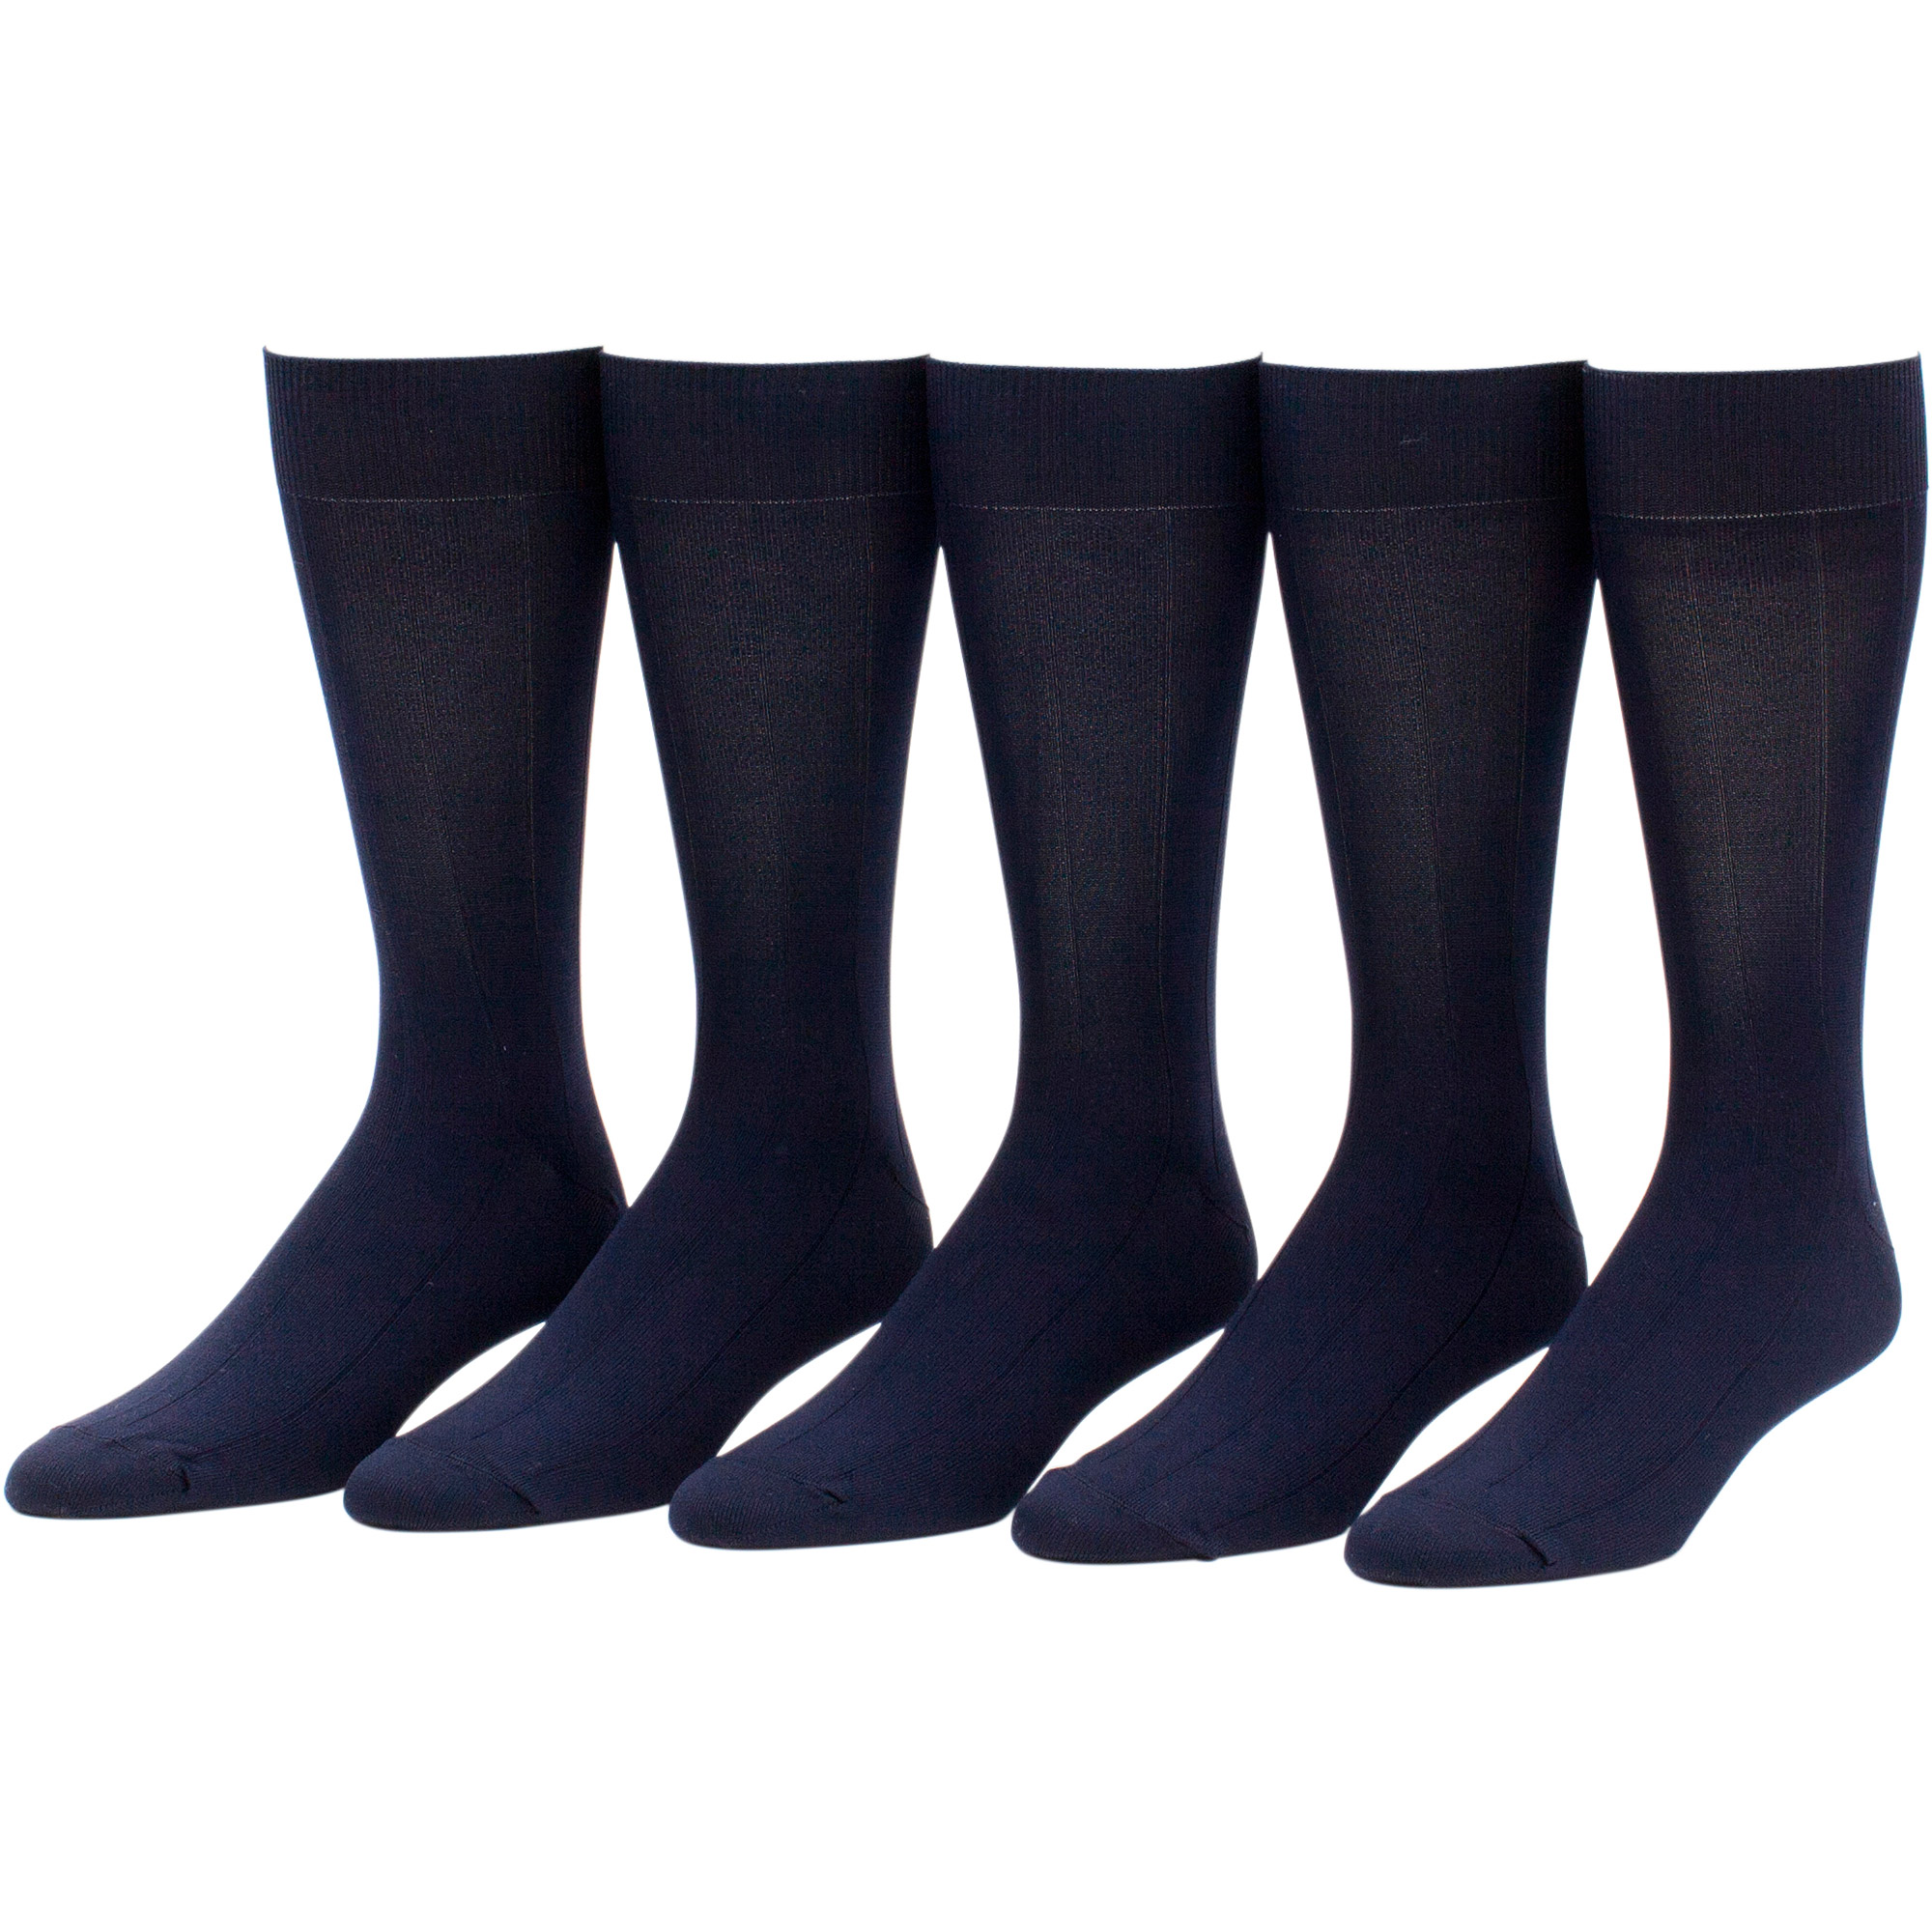 George Men's Nylon Ribbed Crew Socks, 5 Pairs